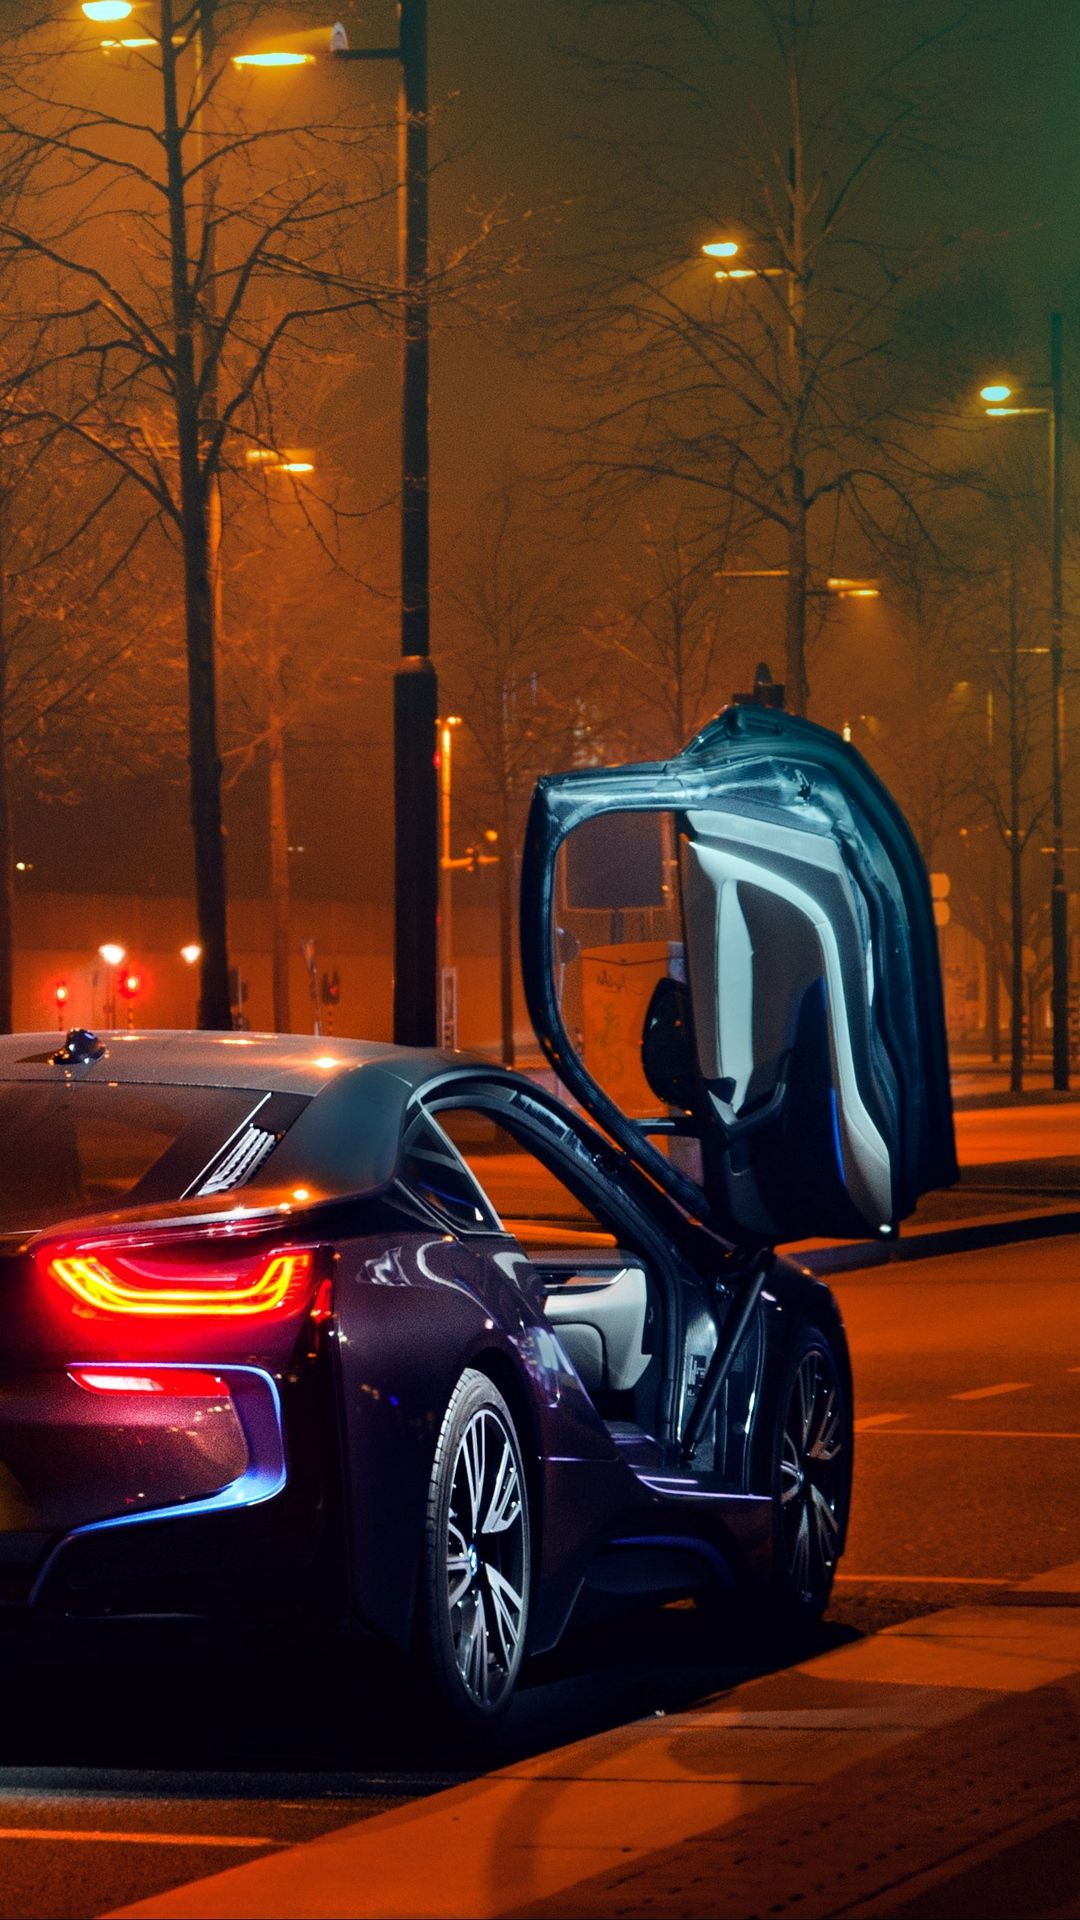 Bmw I8 Sportscar Bmw Cars Wallpaper Lockscreen Mobile Android Ios Infinitywallpaper Luxury Cars Expensive Cars Fancy Cars